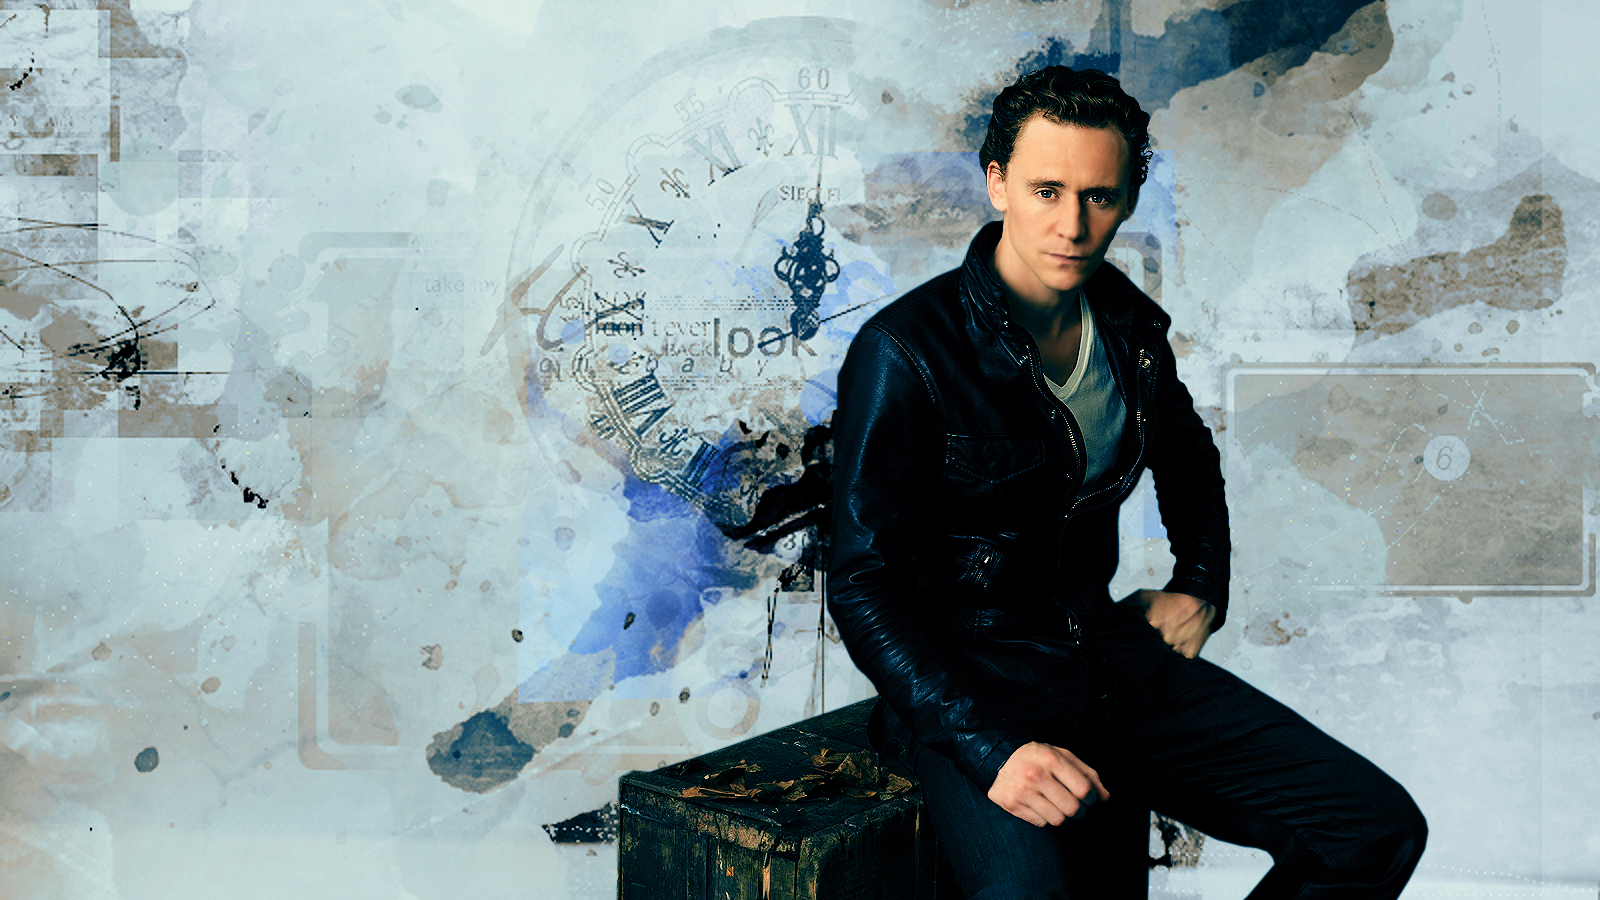 Tom Hiddleston Wallpaper Tumblr Images Pictures   Becuo 1600x900